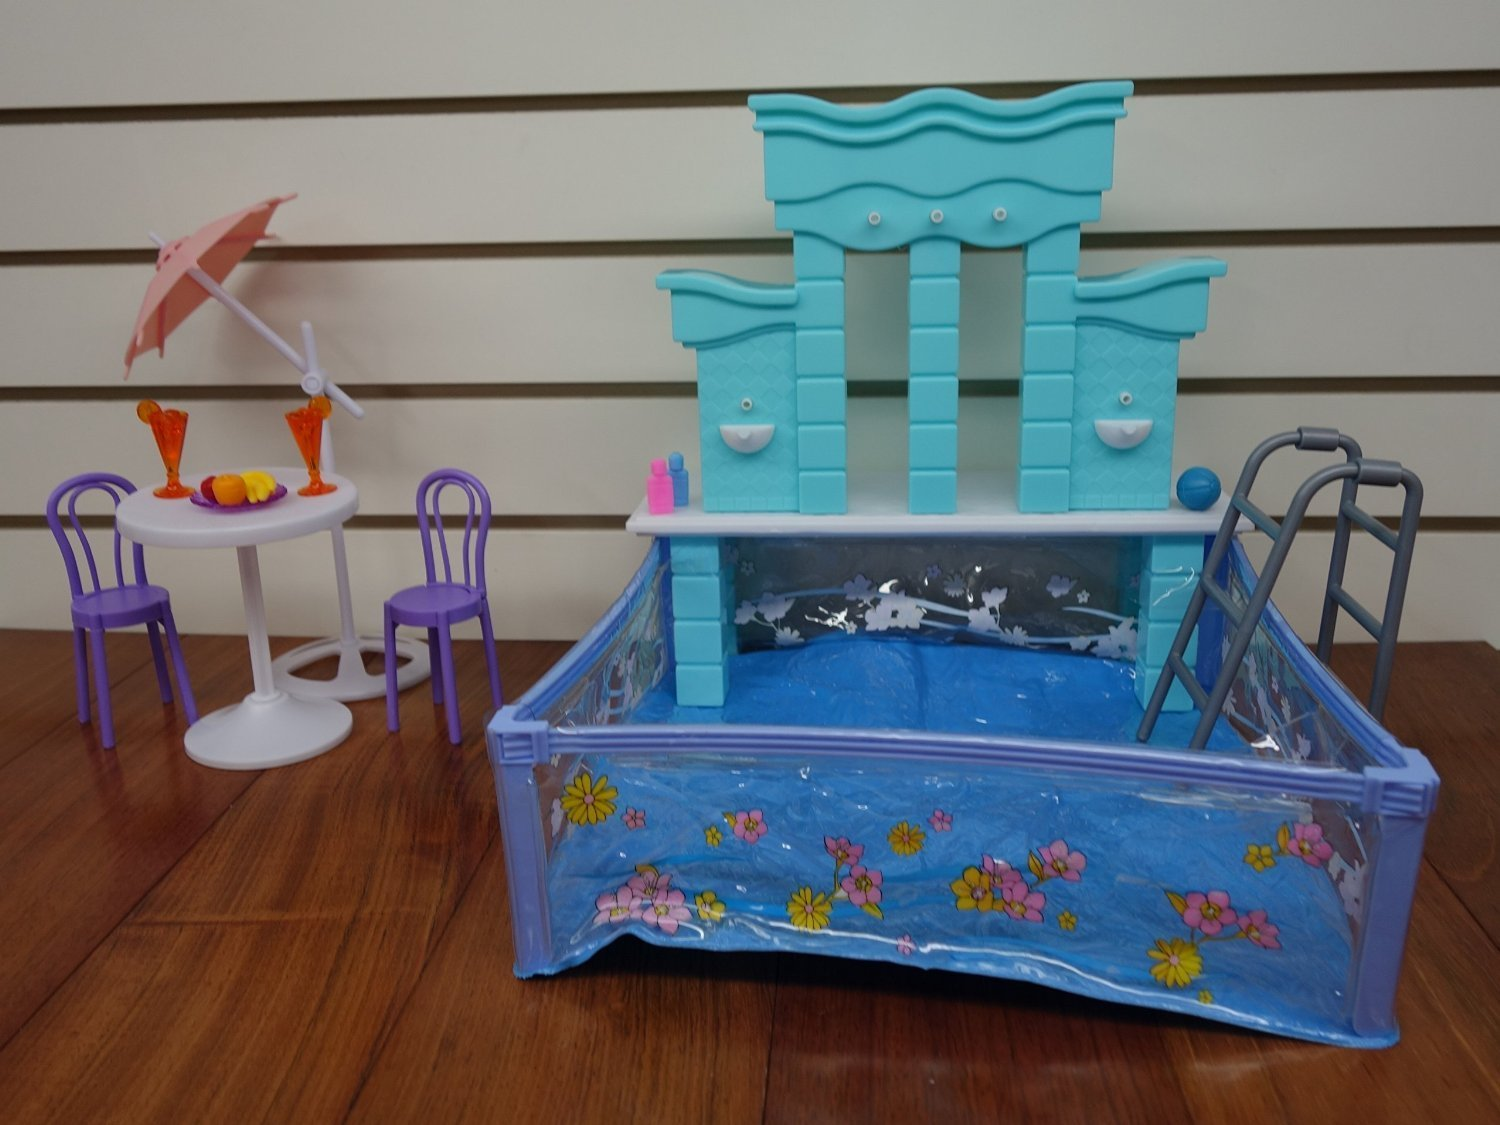 amazoncom barbie size dollhouse furniture water fountain swimming pool play set toys games amazoncom barbie size dollhouse